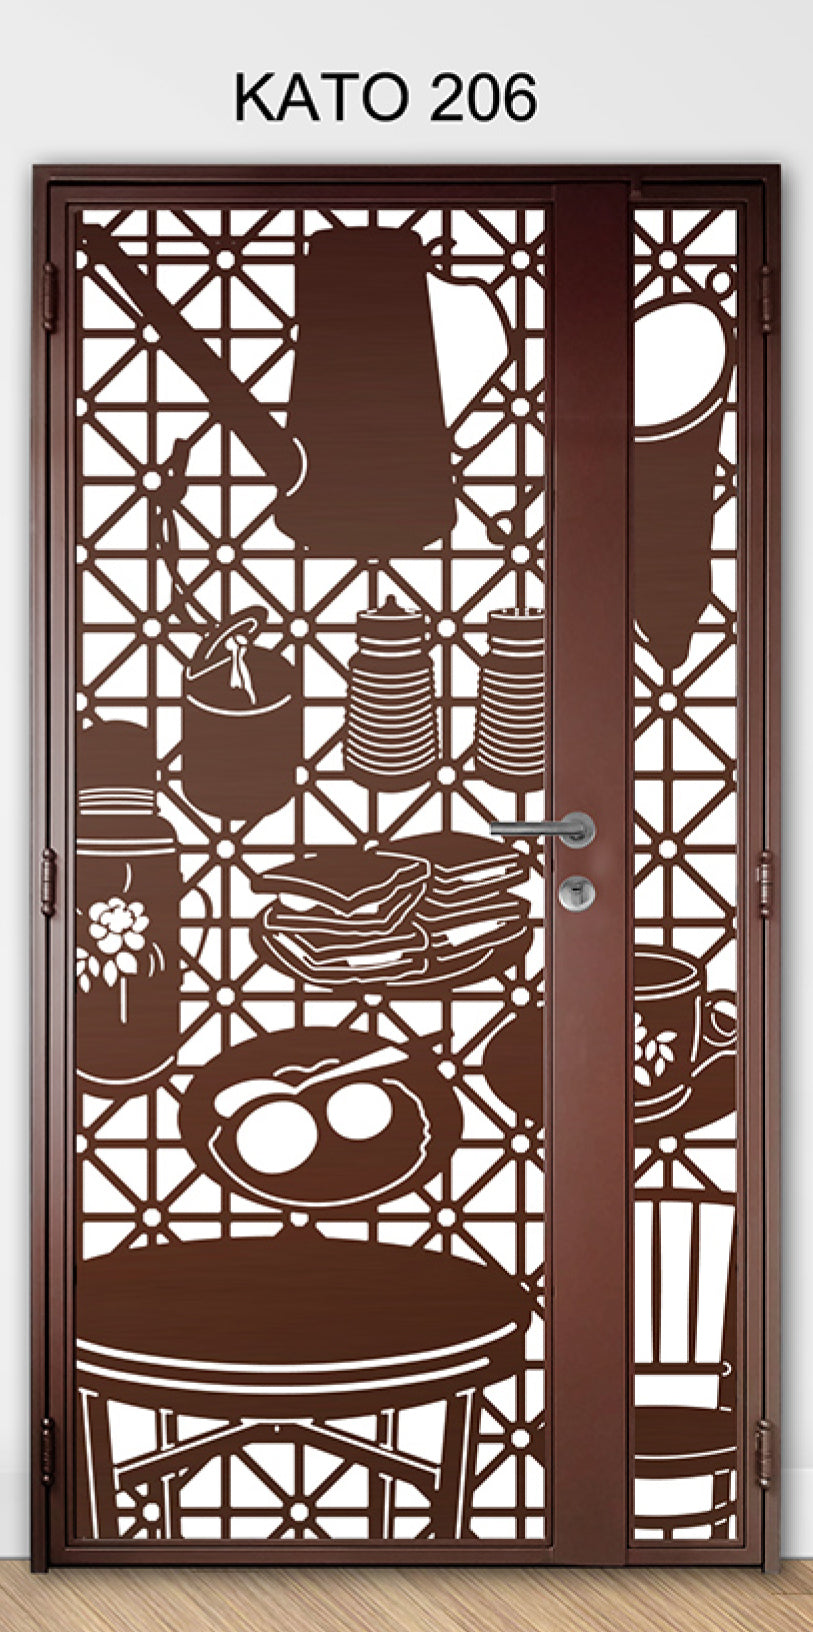 KATO 3D laser Cut mild steel gate 206